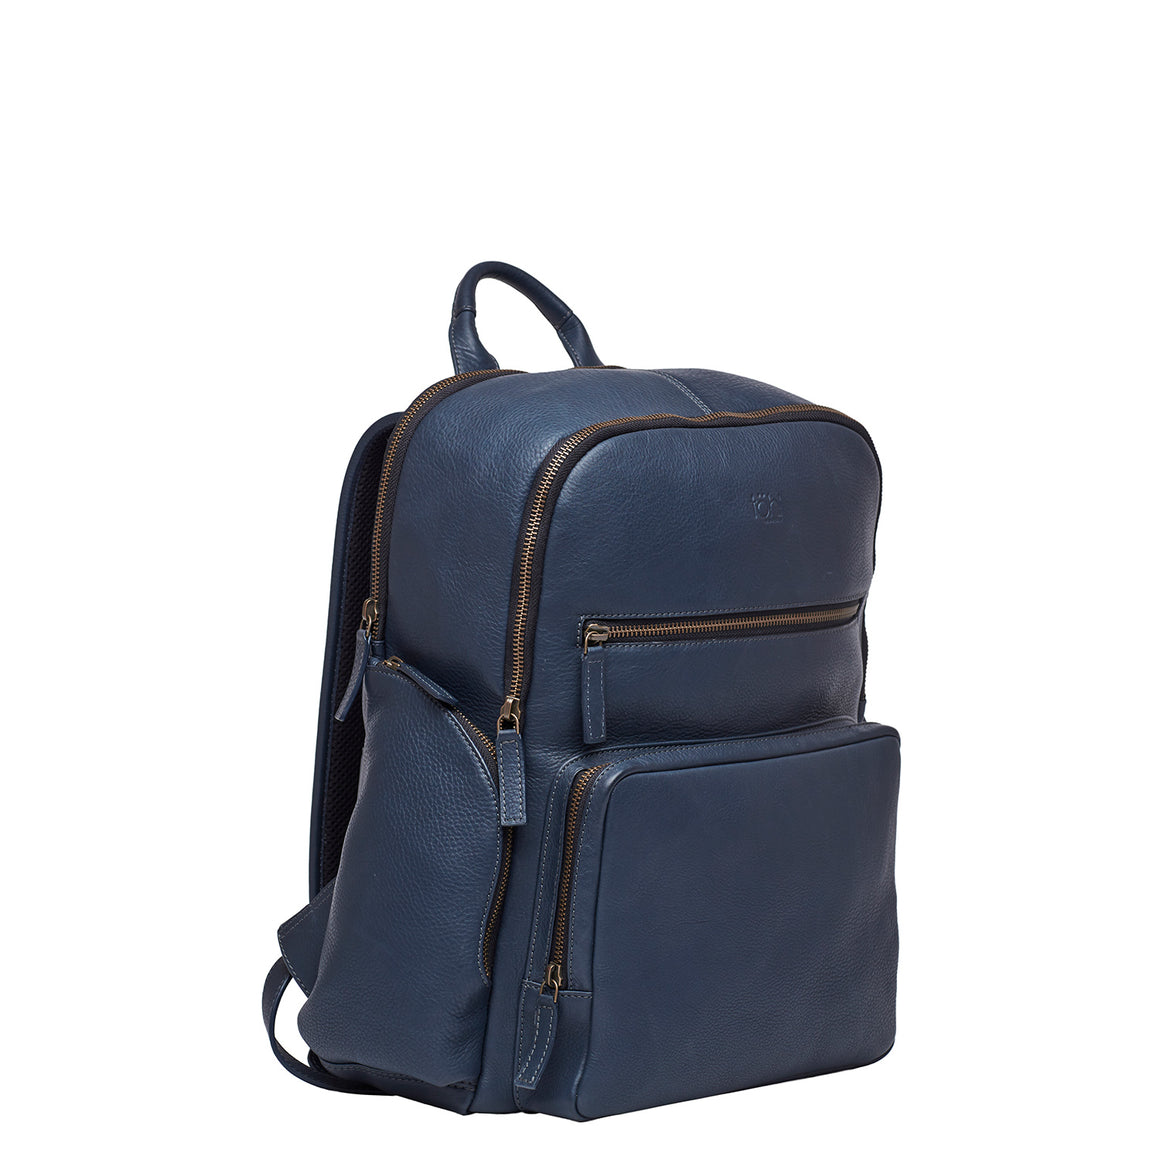 BP 0010 - TOHL FABIO MEN'S BACKPACK - NAVY